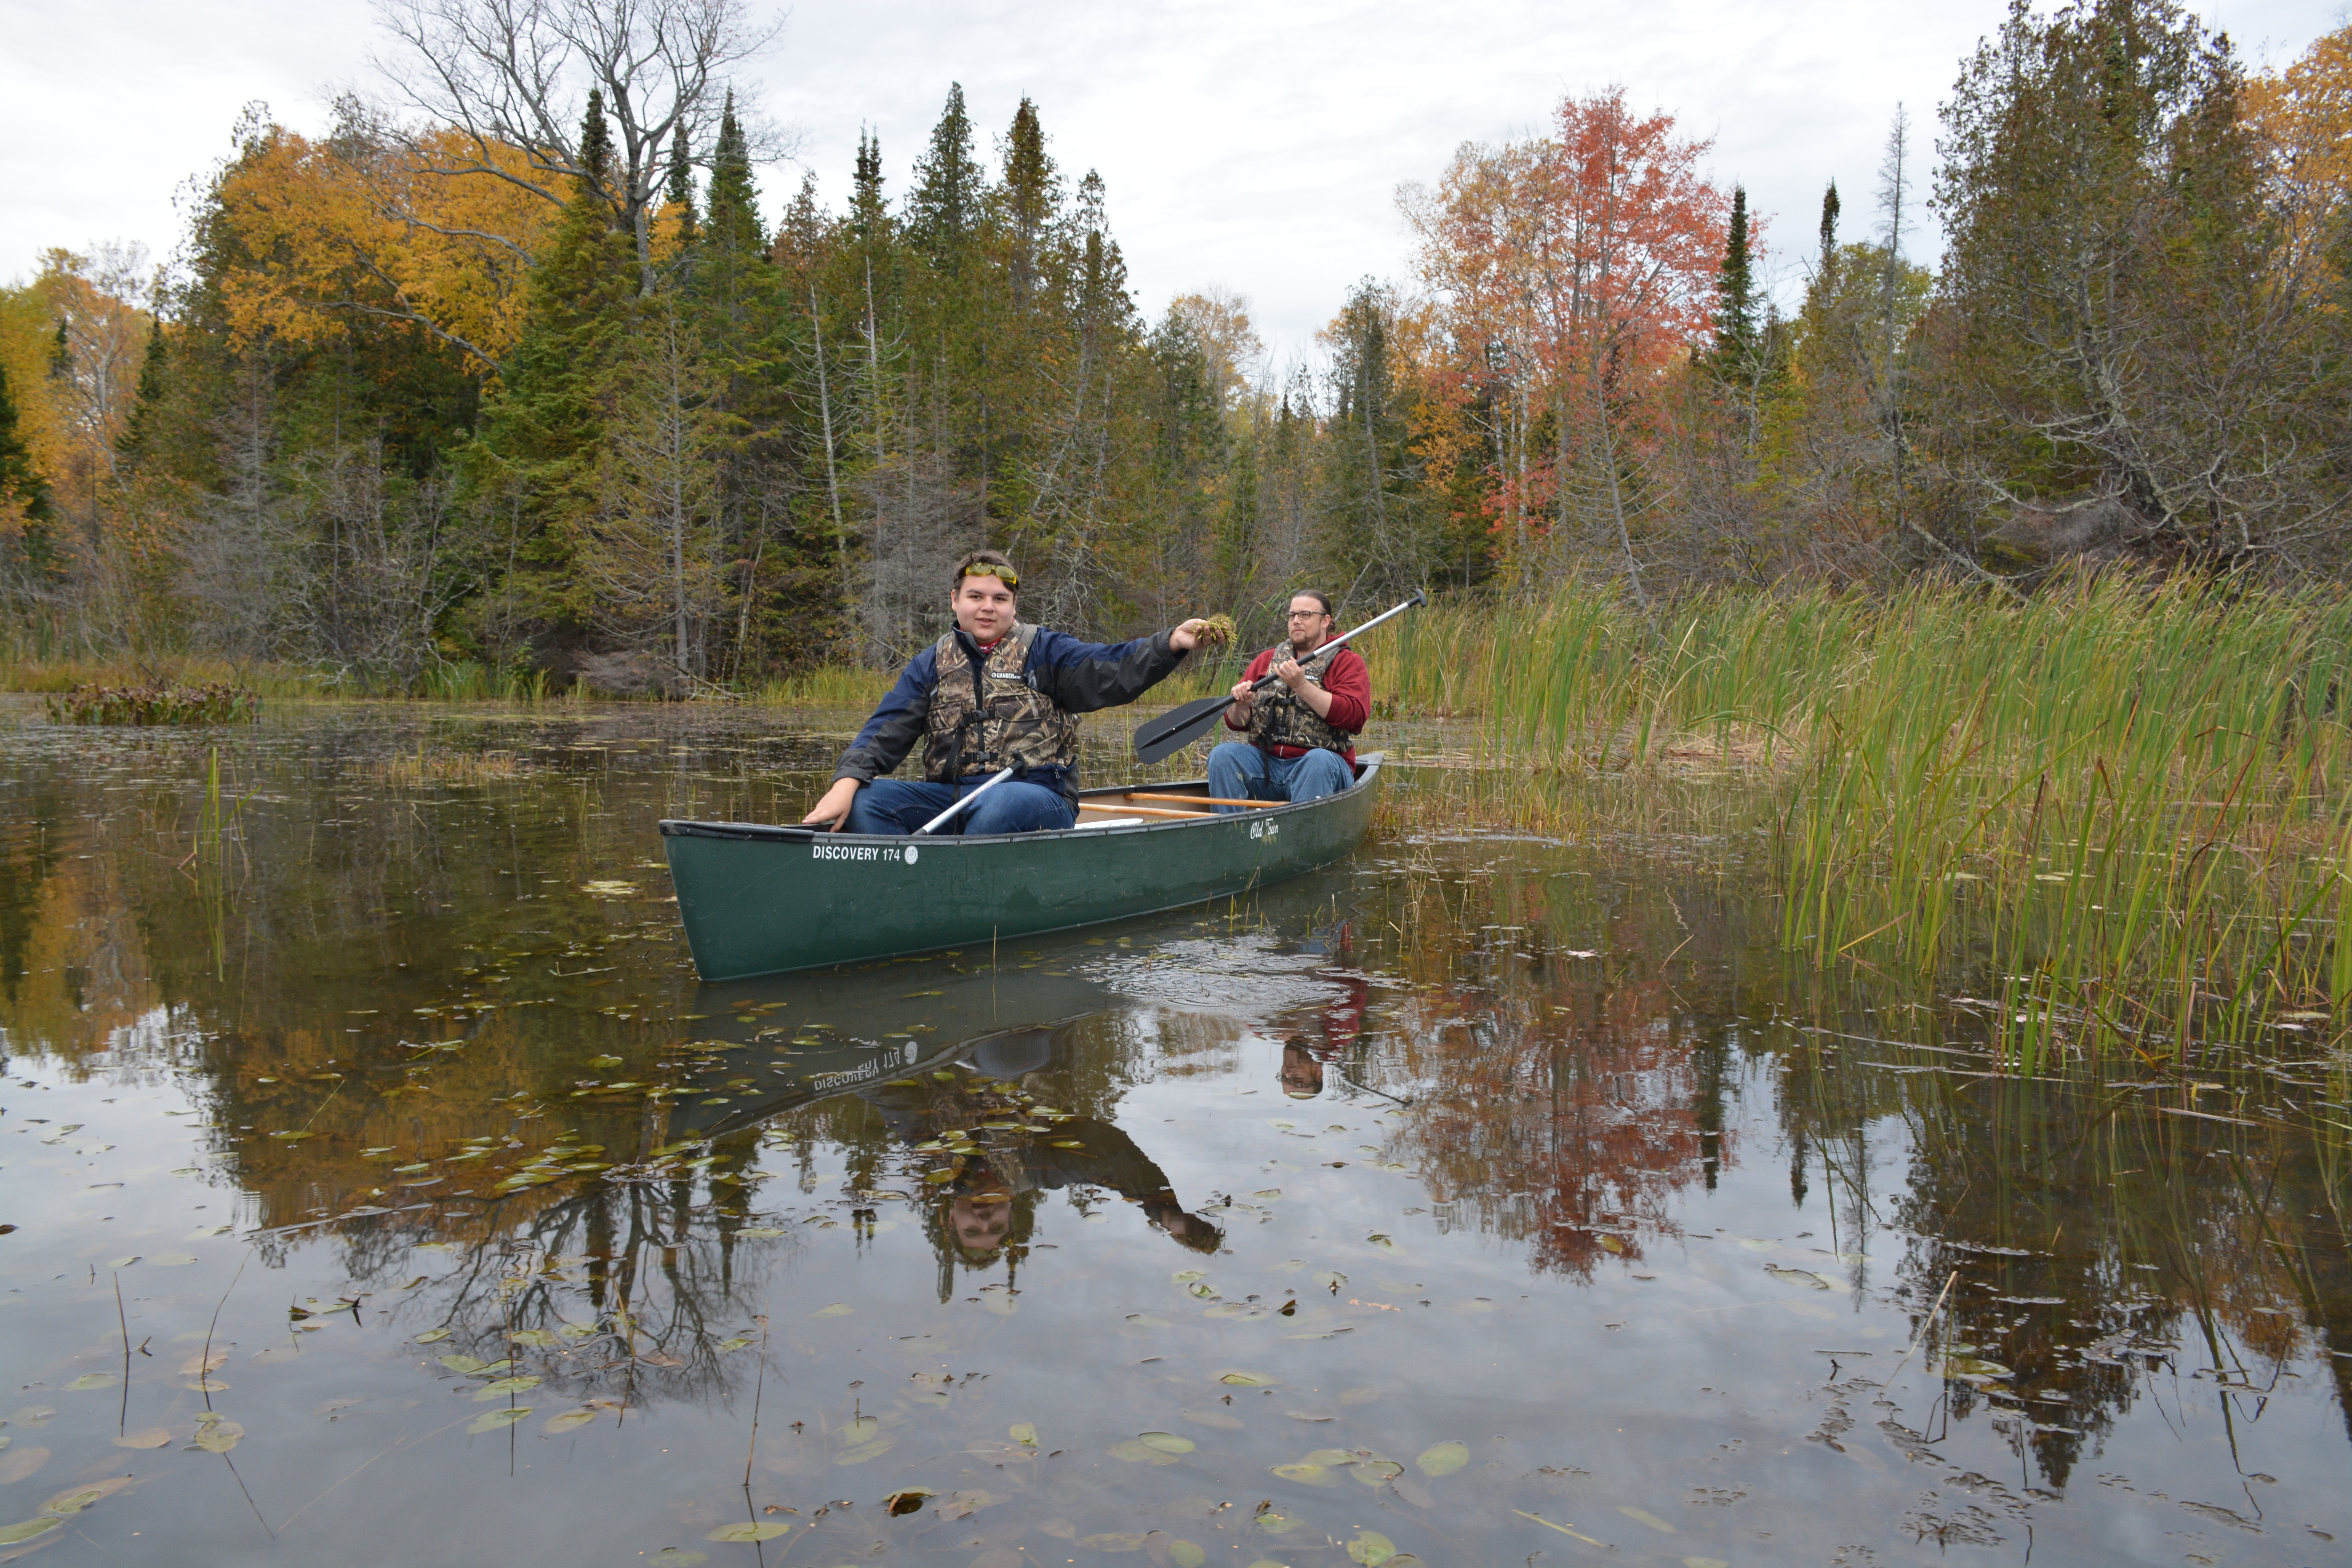 Bayfield High School Alternative Education students worked with Red Cliff tribal members in an effort to place manoomin (wild rice) seed in the Raspberry River, a Lake Superior tributary. (Image courtesy of Rick Erickson/Bayfield High School)